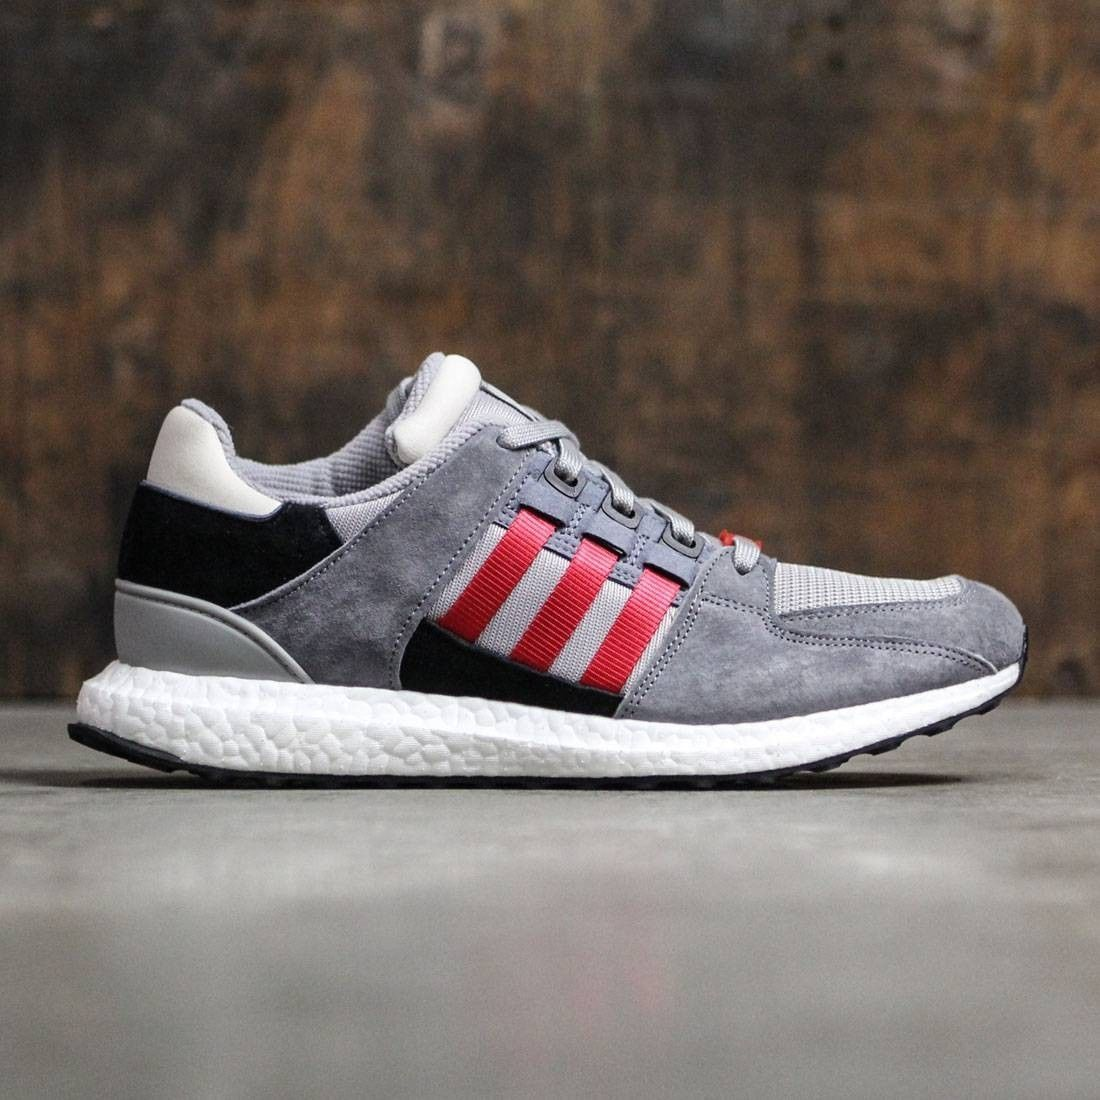 adidas eqt support 93 16 red black white grey size 12 s79924 nmd